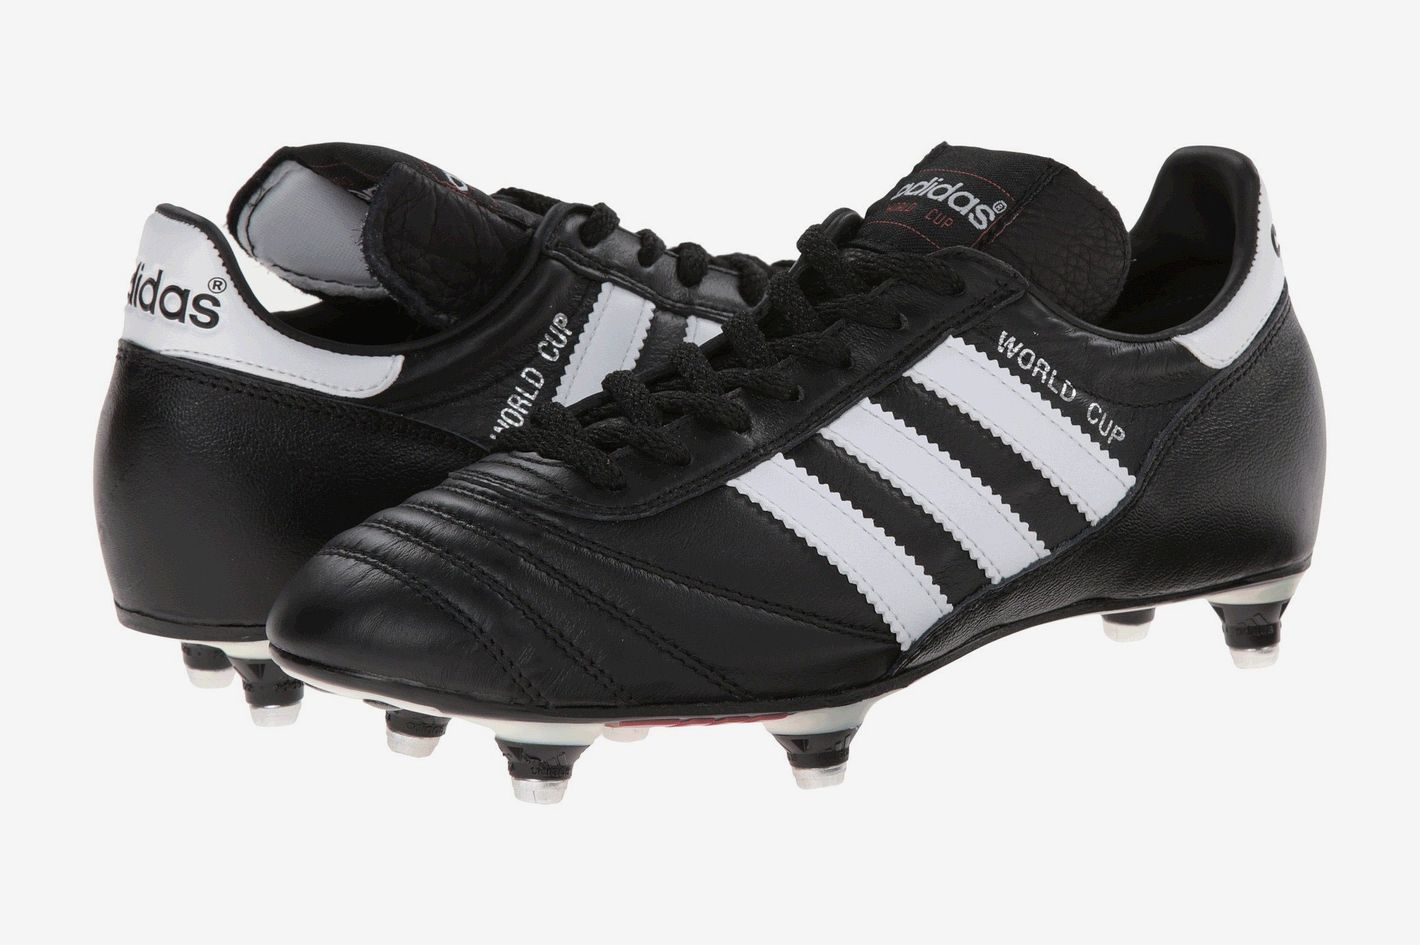 3036a76dafb Adidas World Cup. Adidas World Cup. The same shoe ...